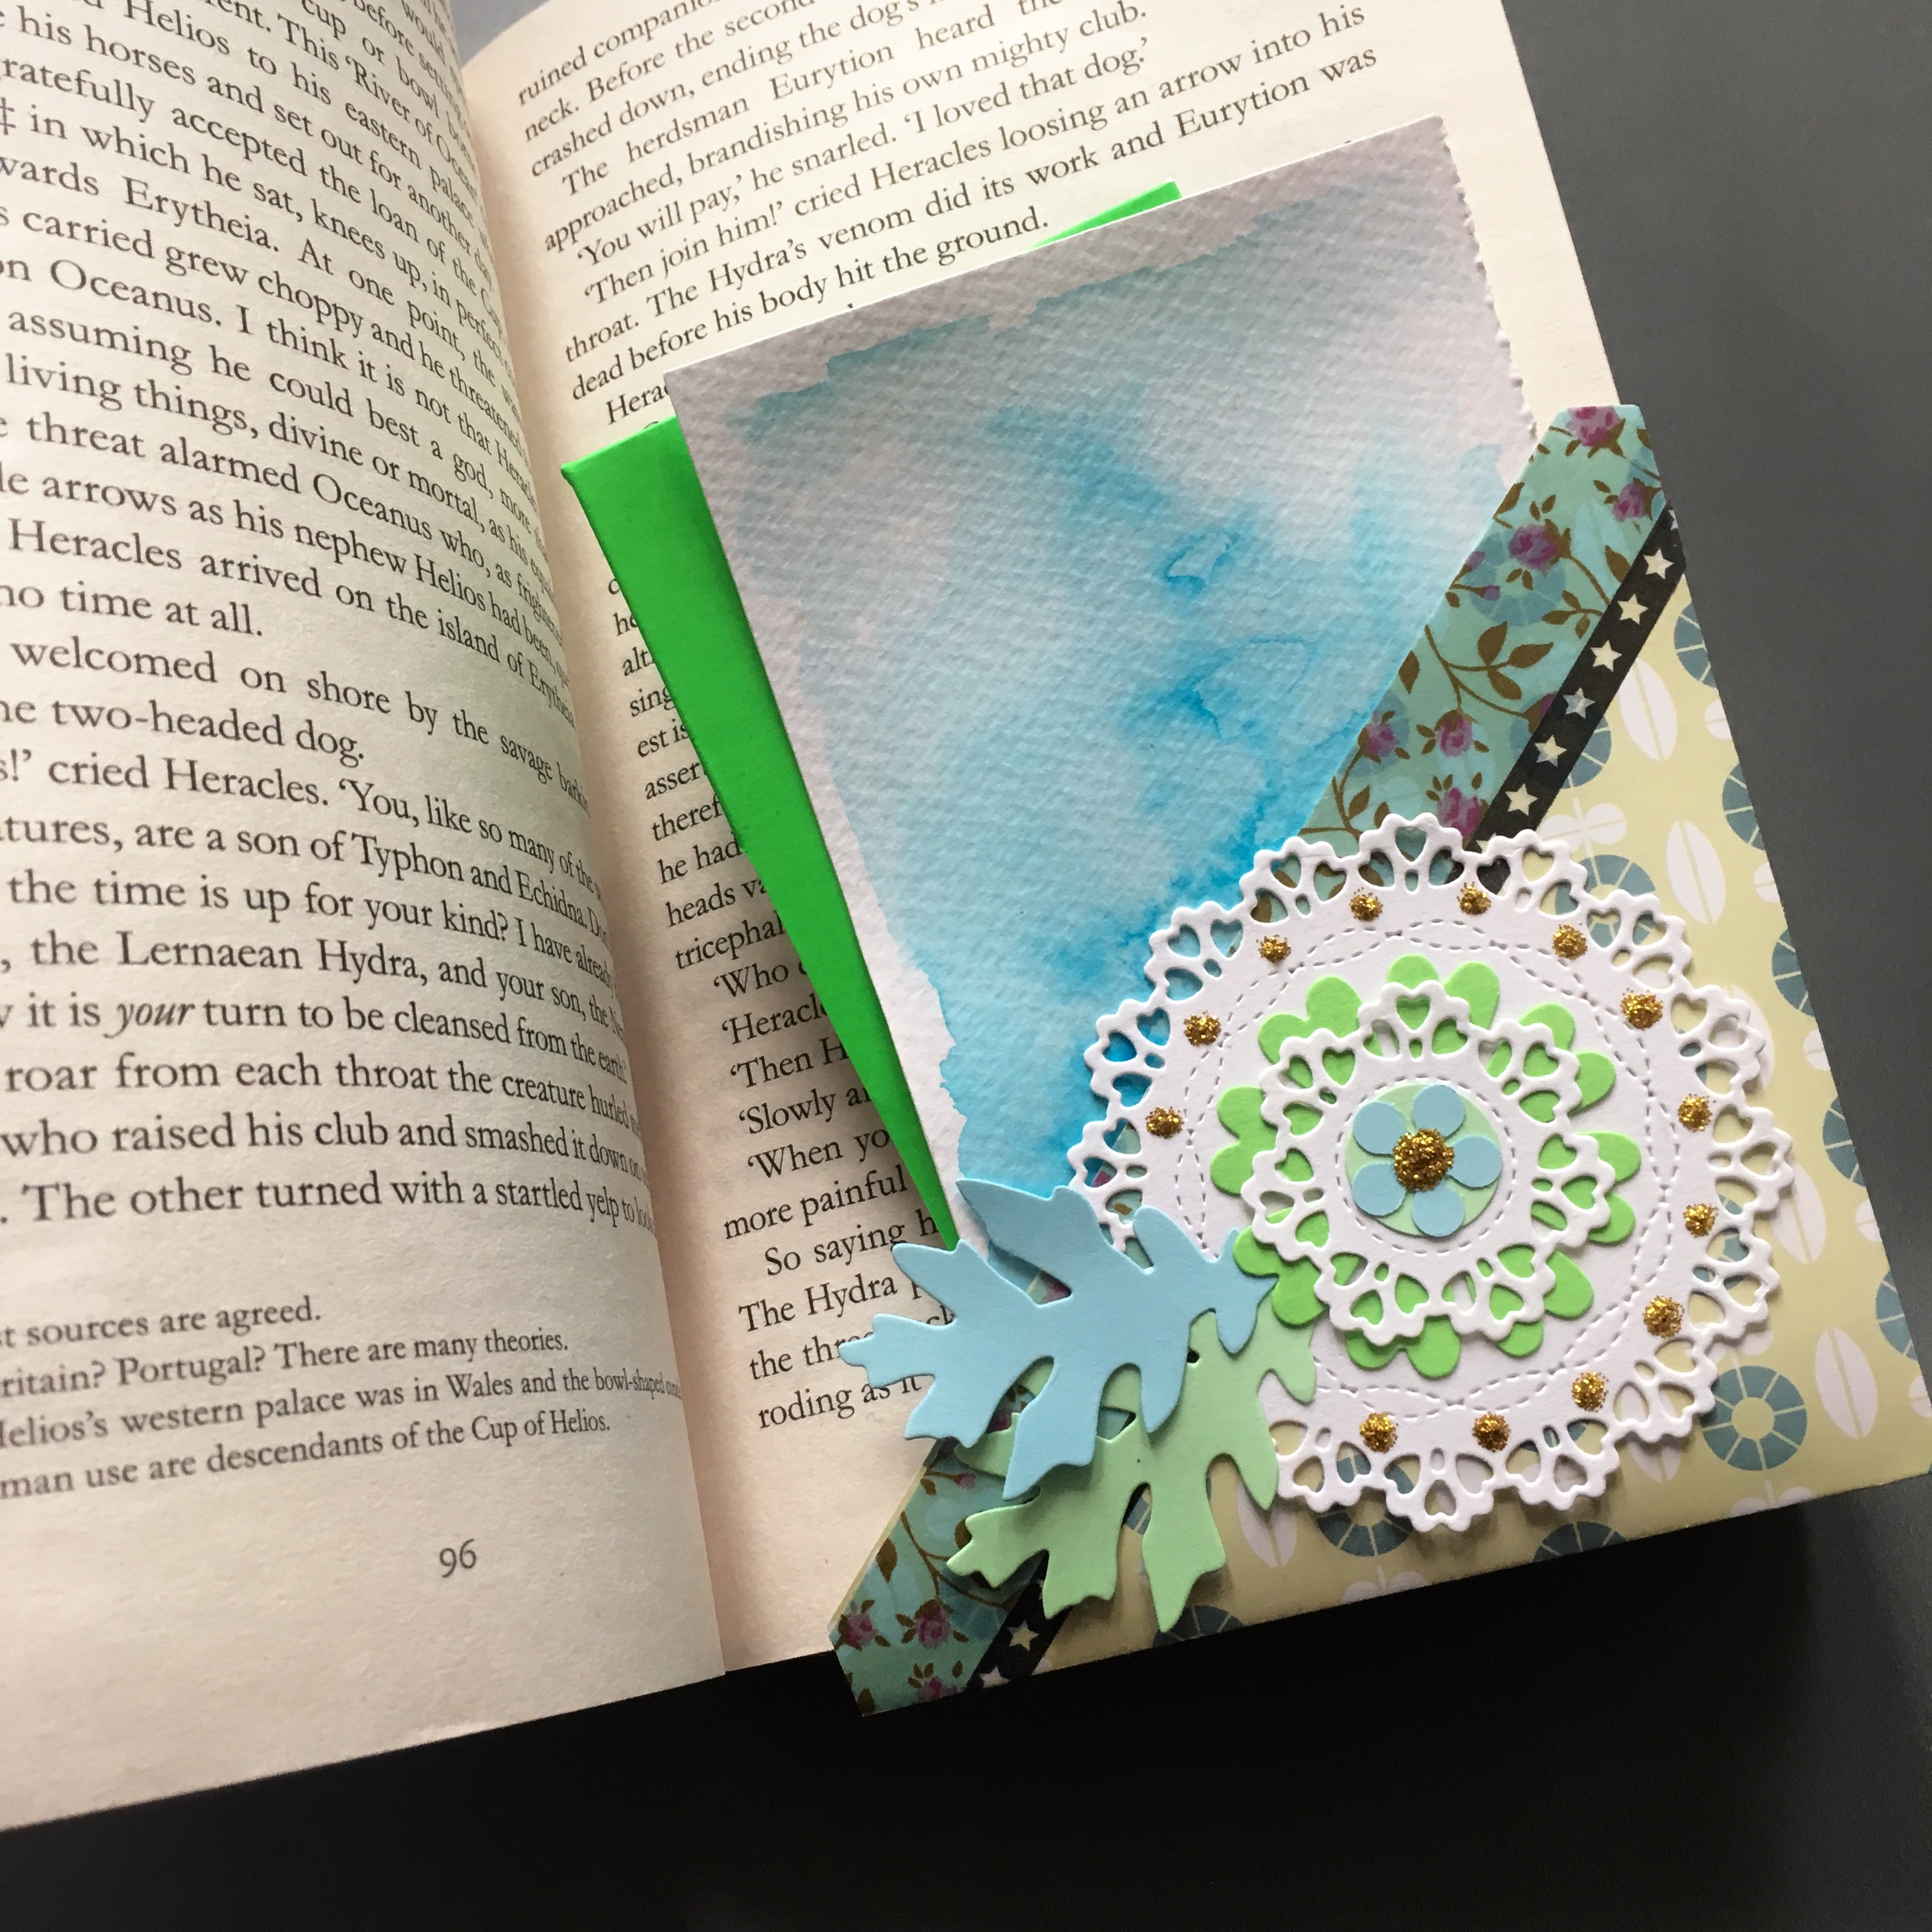 book with a pocket bookmark and notes and other pieces of paper in the pocket